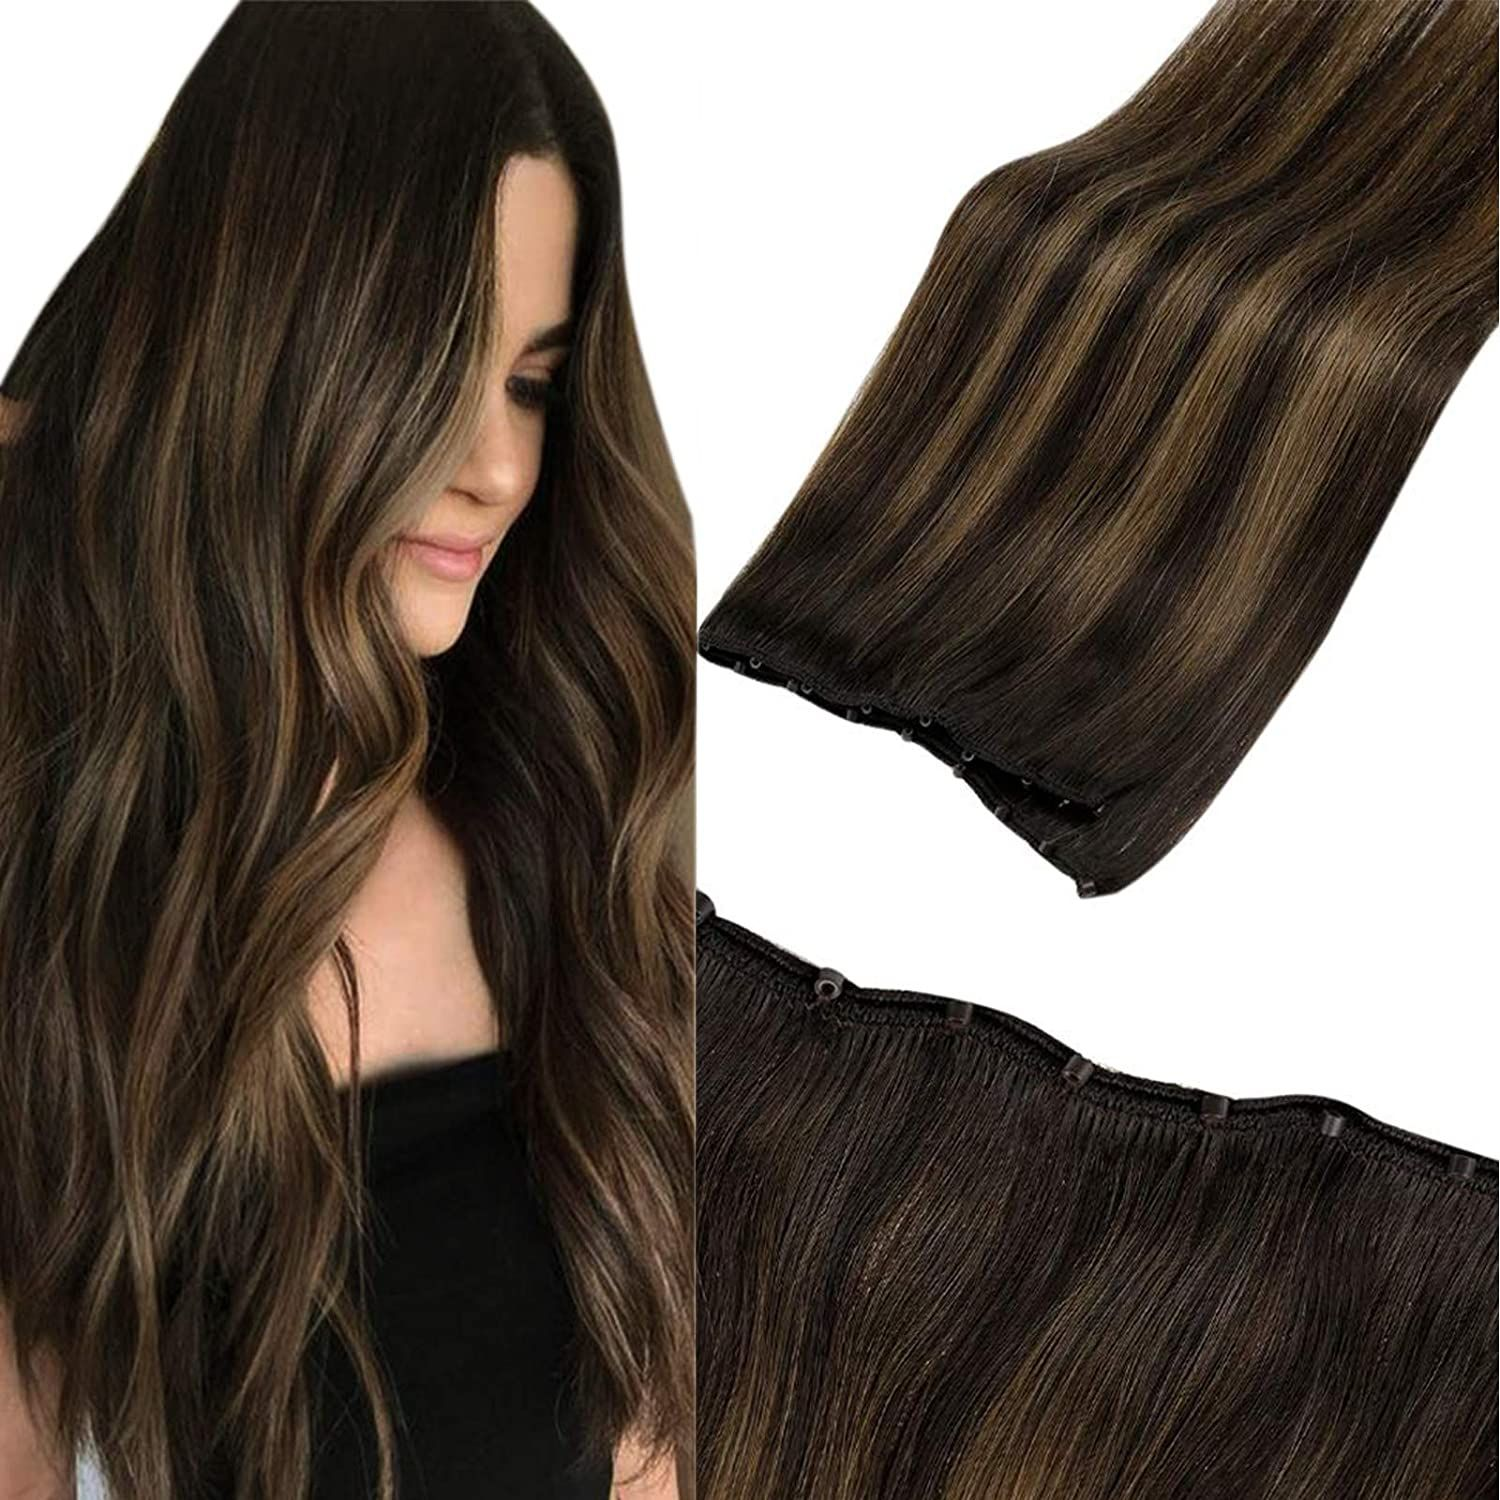 364d598385b6ebb05608cd1f1328198b - How Much Is It To Get Hair Extensions Done Professionally